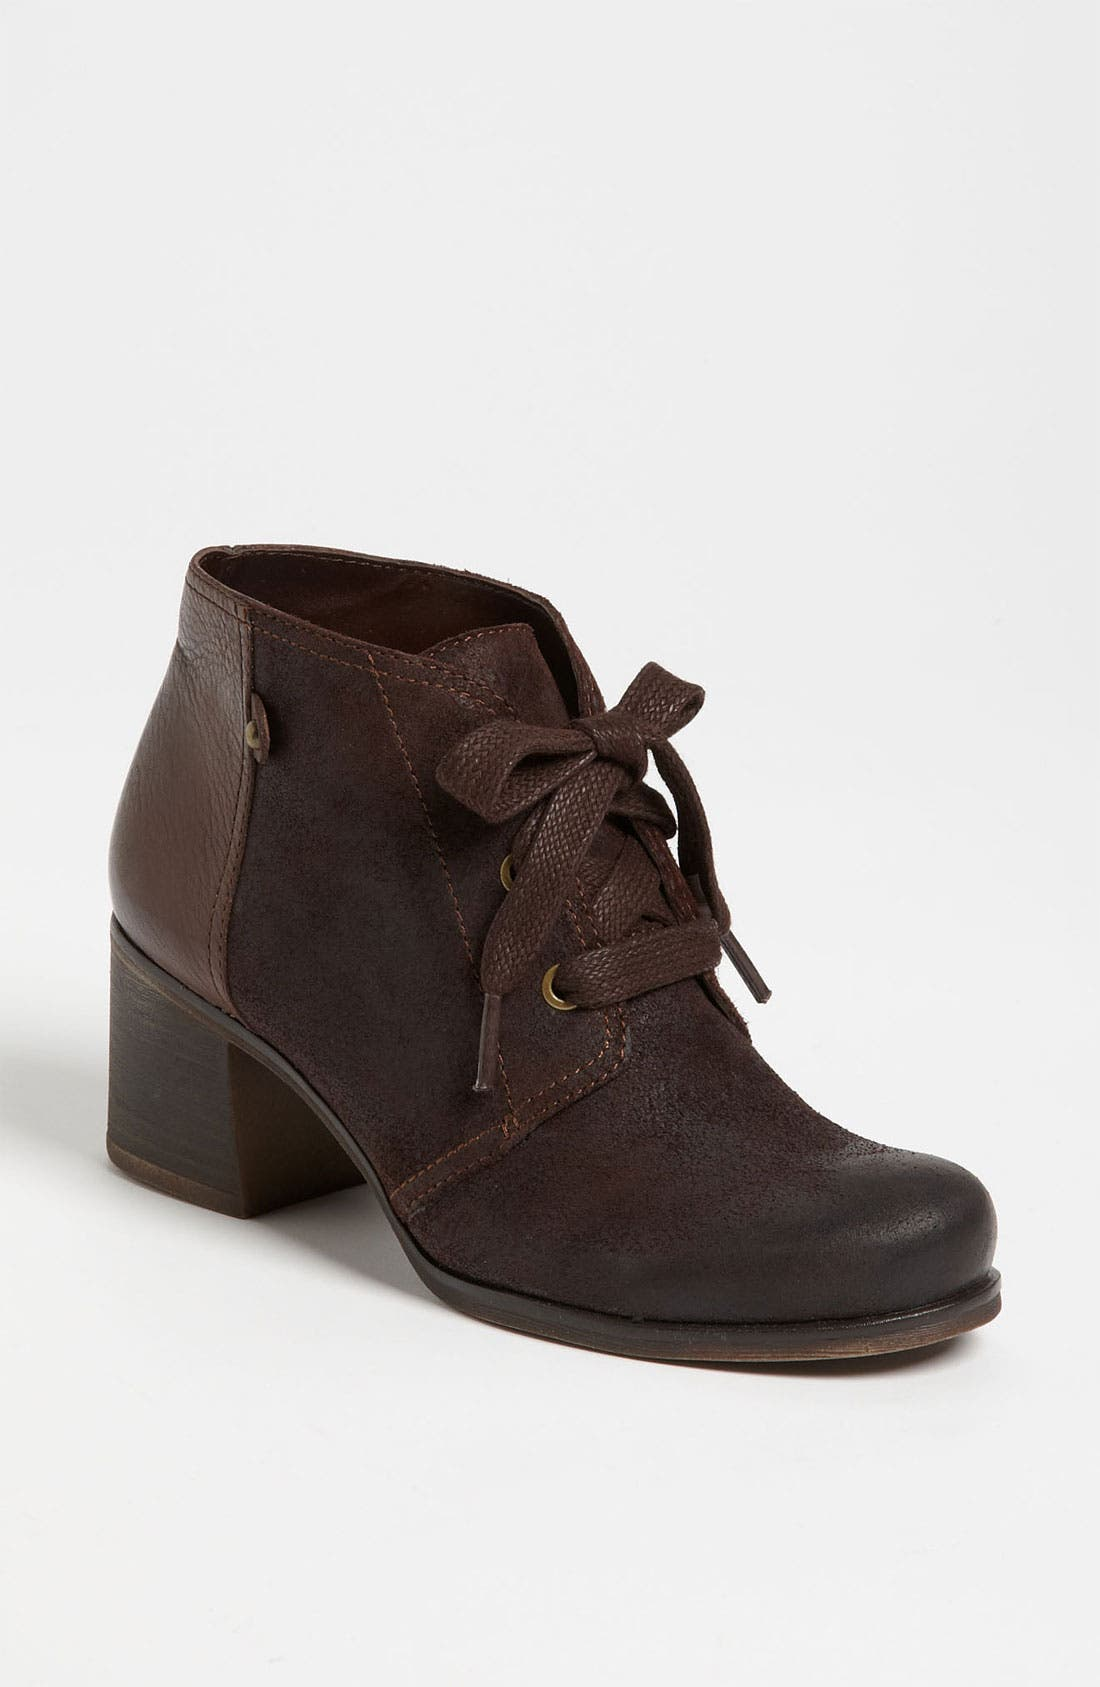 Alternate Image 1 Selected - Naturalizer 'Ranger' Ankle Boot